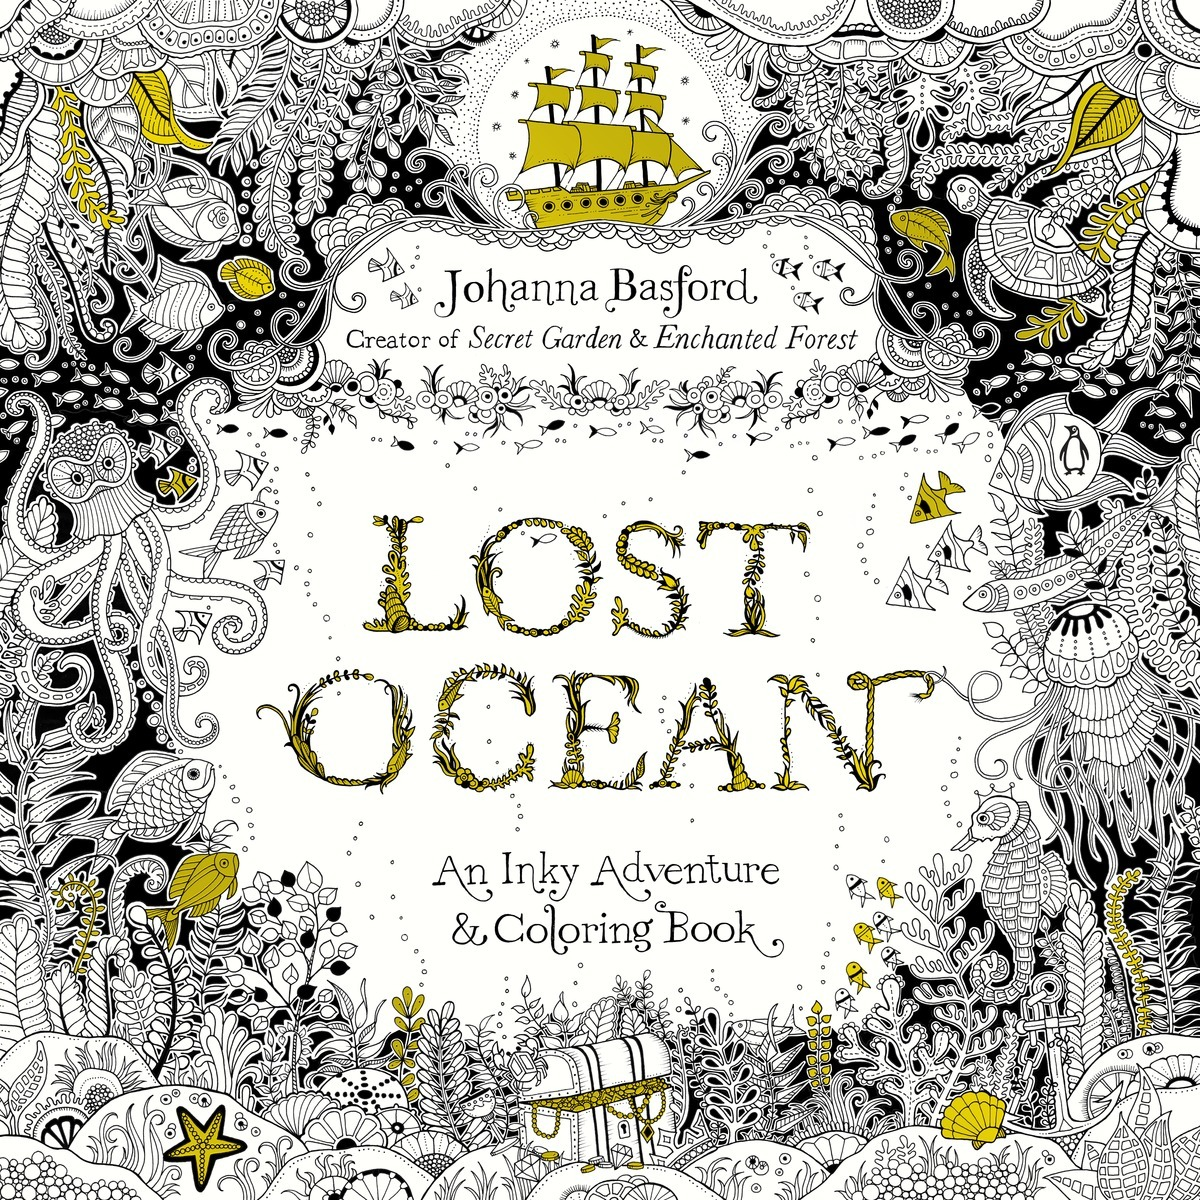 Secret garden colouring in book nz - Lost Ocean An Inky Adventure And Coloring Book For Adults Secret Garden